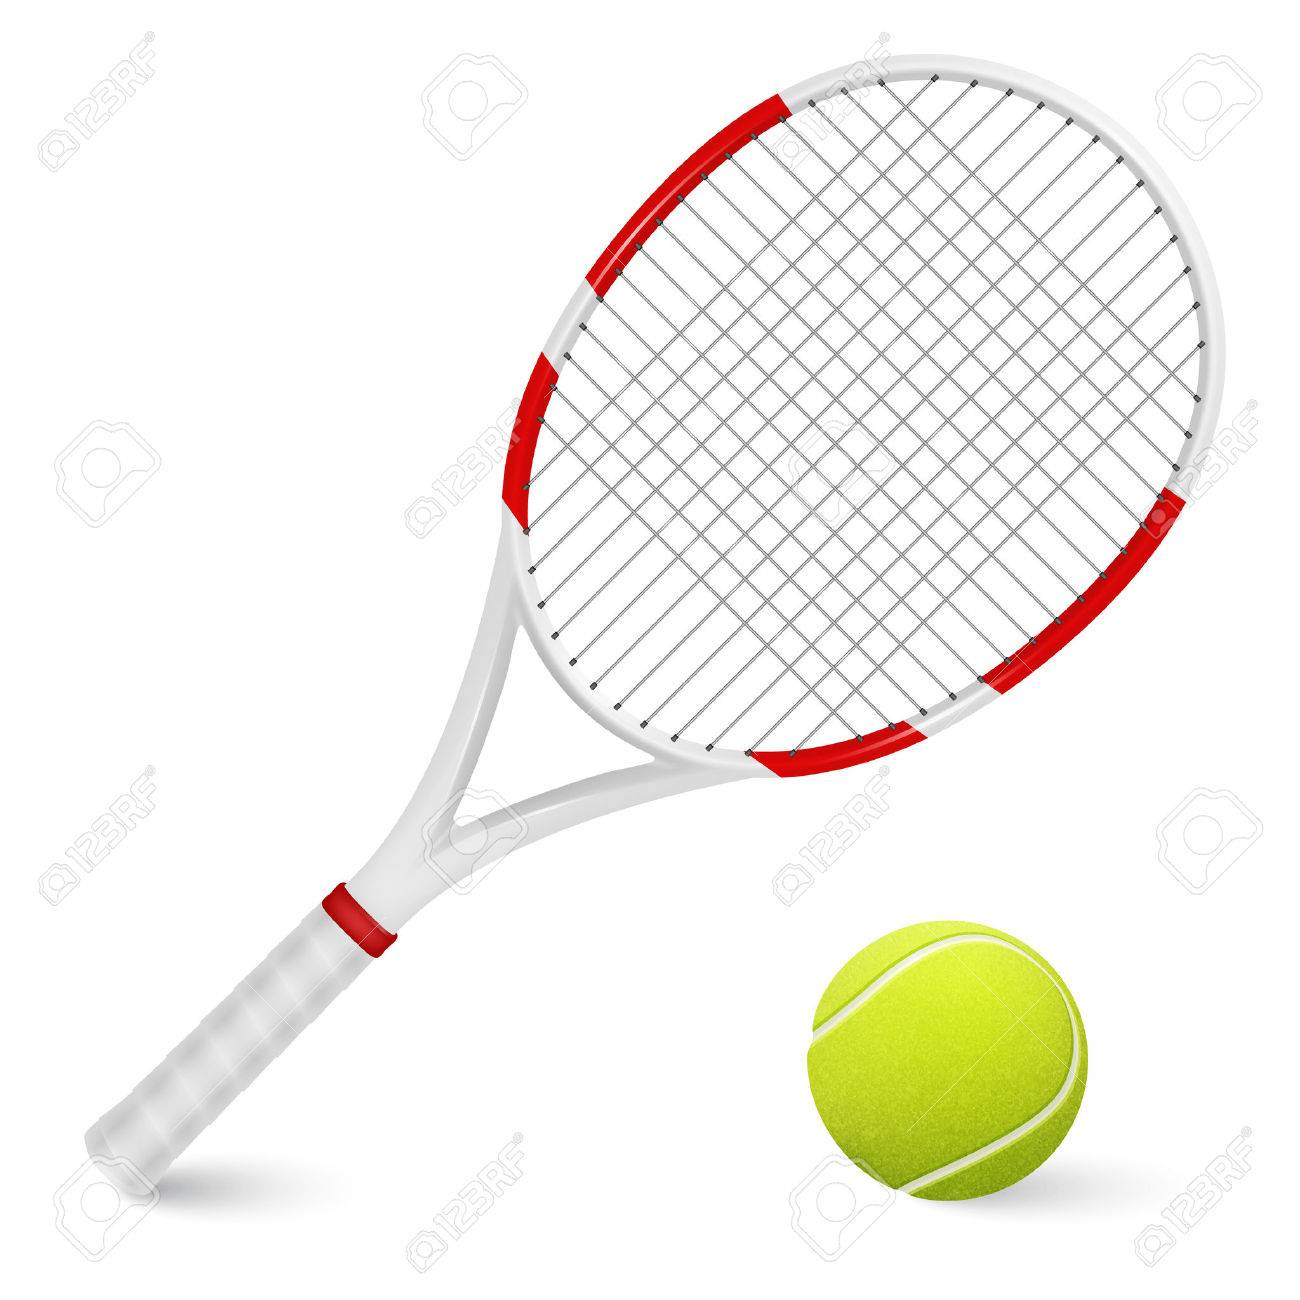 Combination of tennis racket and ball isolated on white background. - 39890963